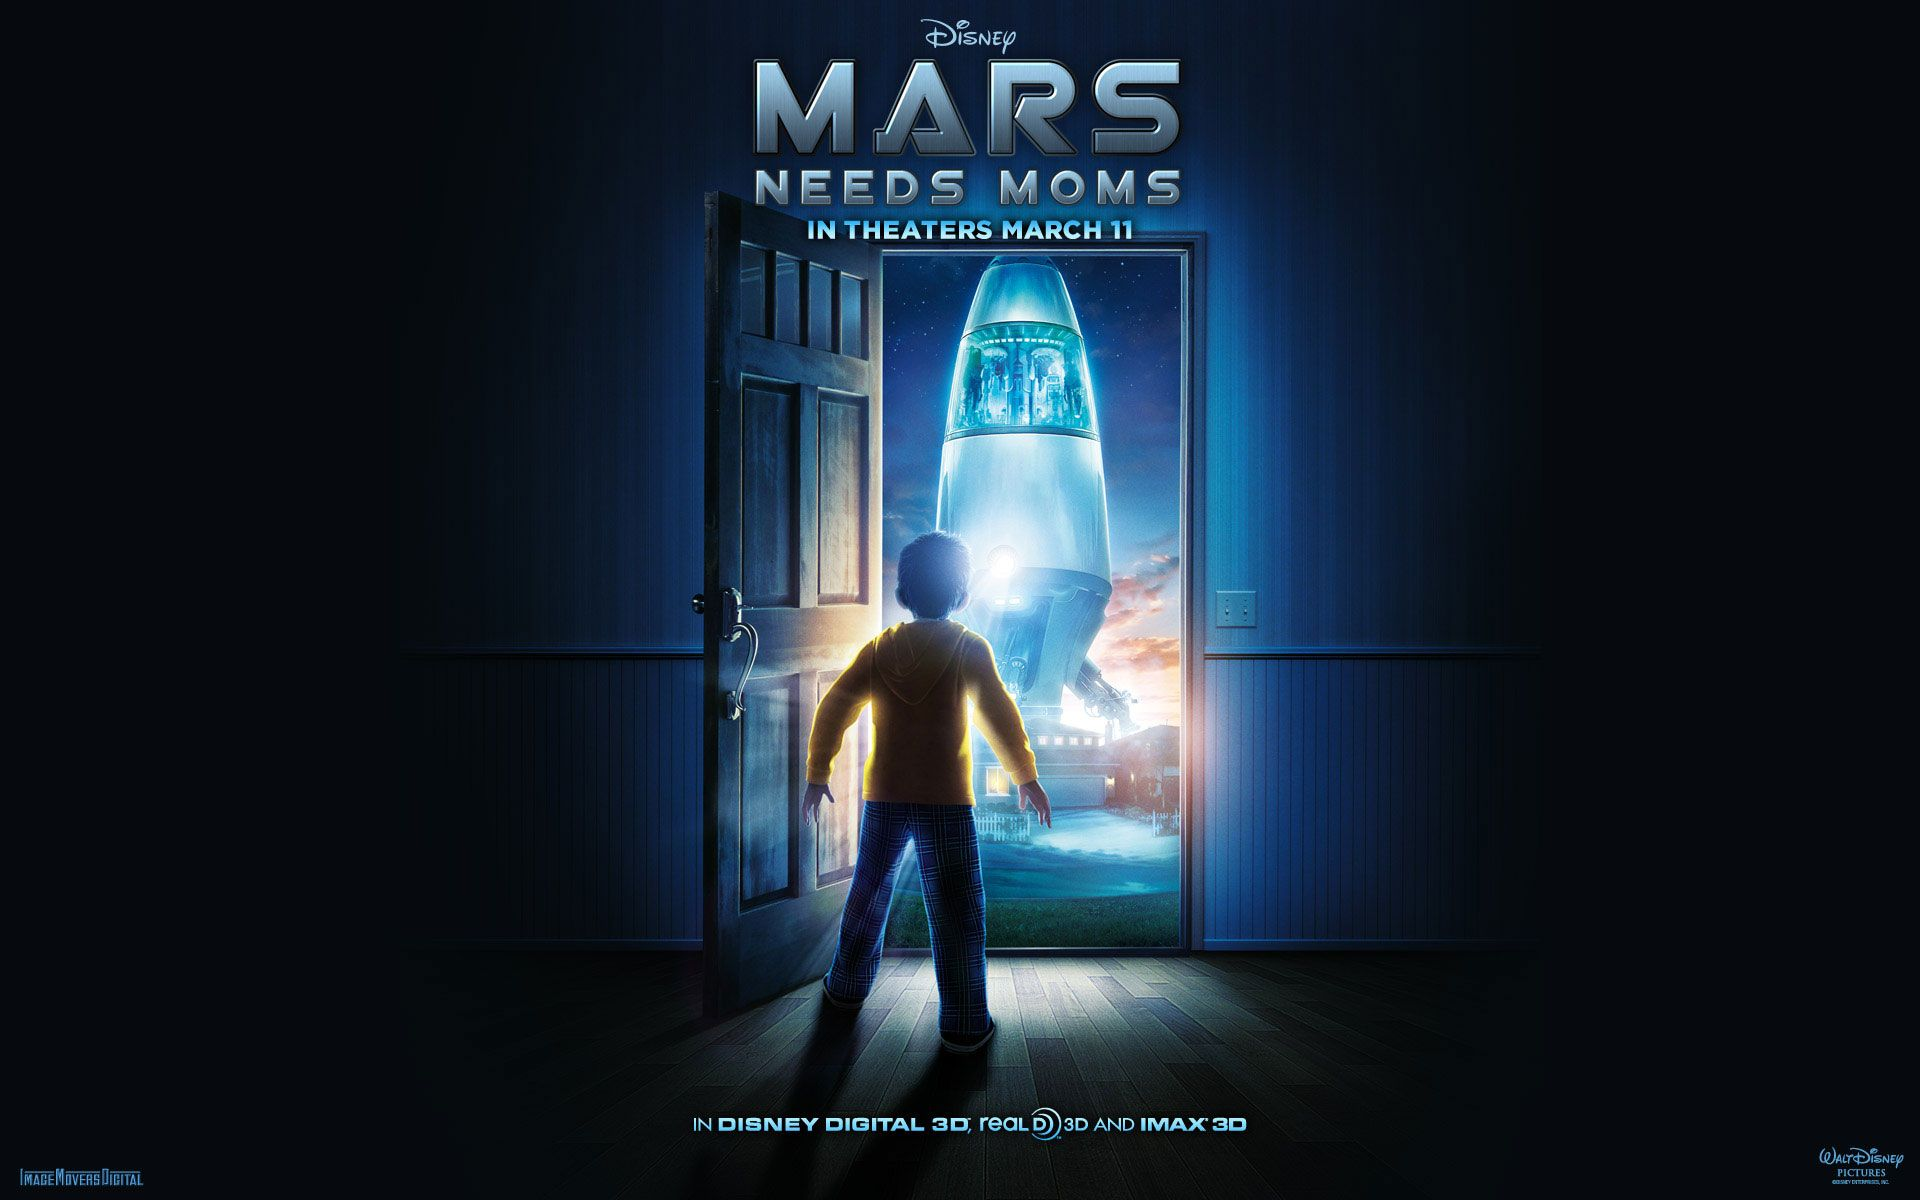 Watch Streaming HD Mars Needs Moms, starring Seth Green, Joan Cusack, Dan Fogler, Elisabeth Harnois. A young boy named Milo gains a deeper appreciation for his mom after Martians come to Earth to take her away. #Animation #Action #Adventure #Comedy #Family #Sci-Fi http://play.theatrr.com/play.php?movie=1305591